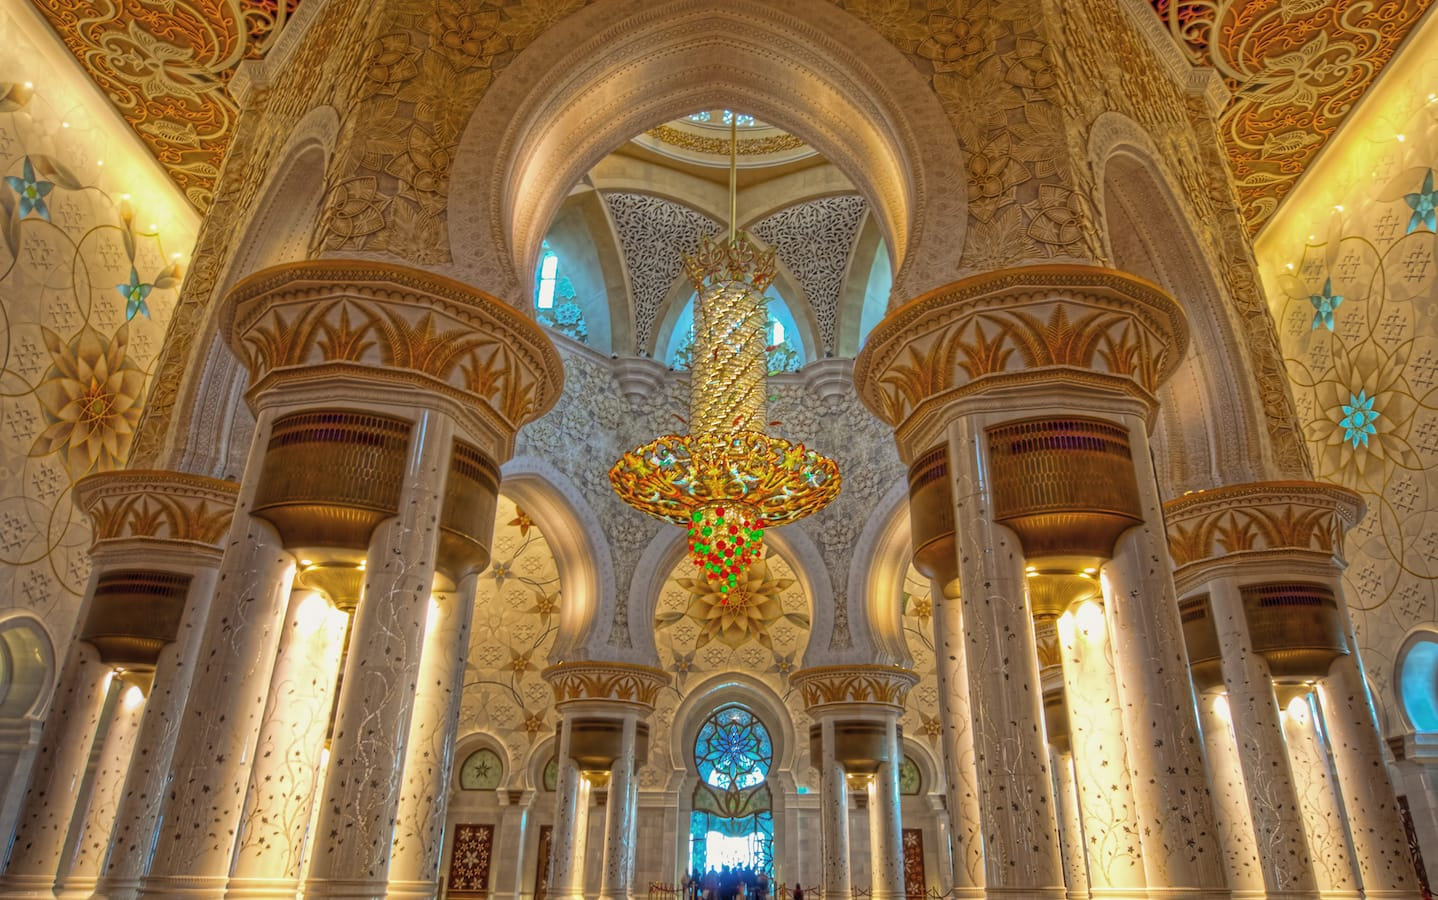 Sheikh Zayed Mosque cannot not be added to the list of free things to do in Abu Dhabi.